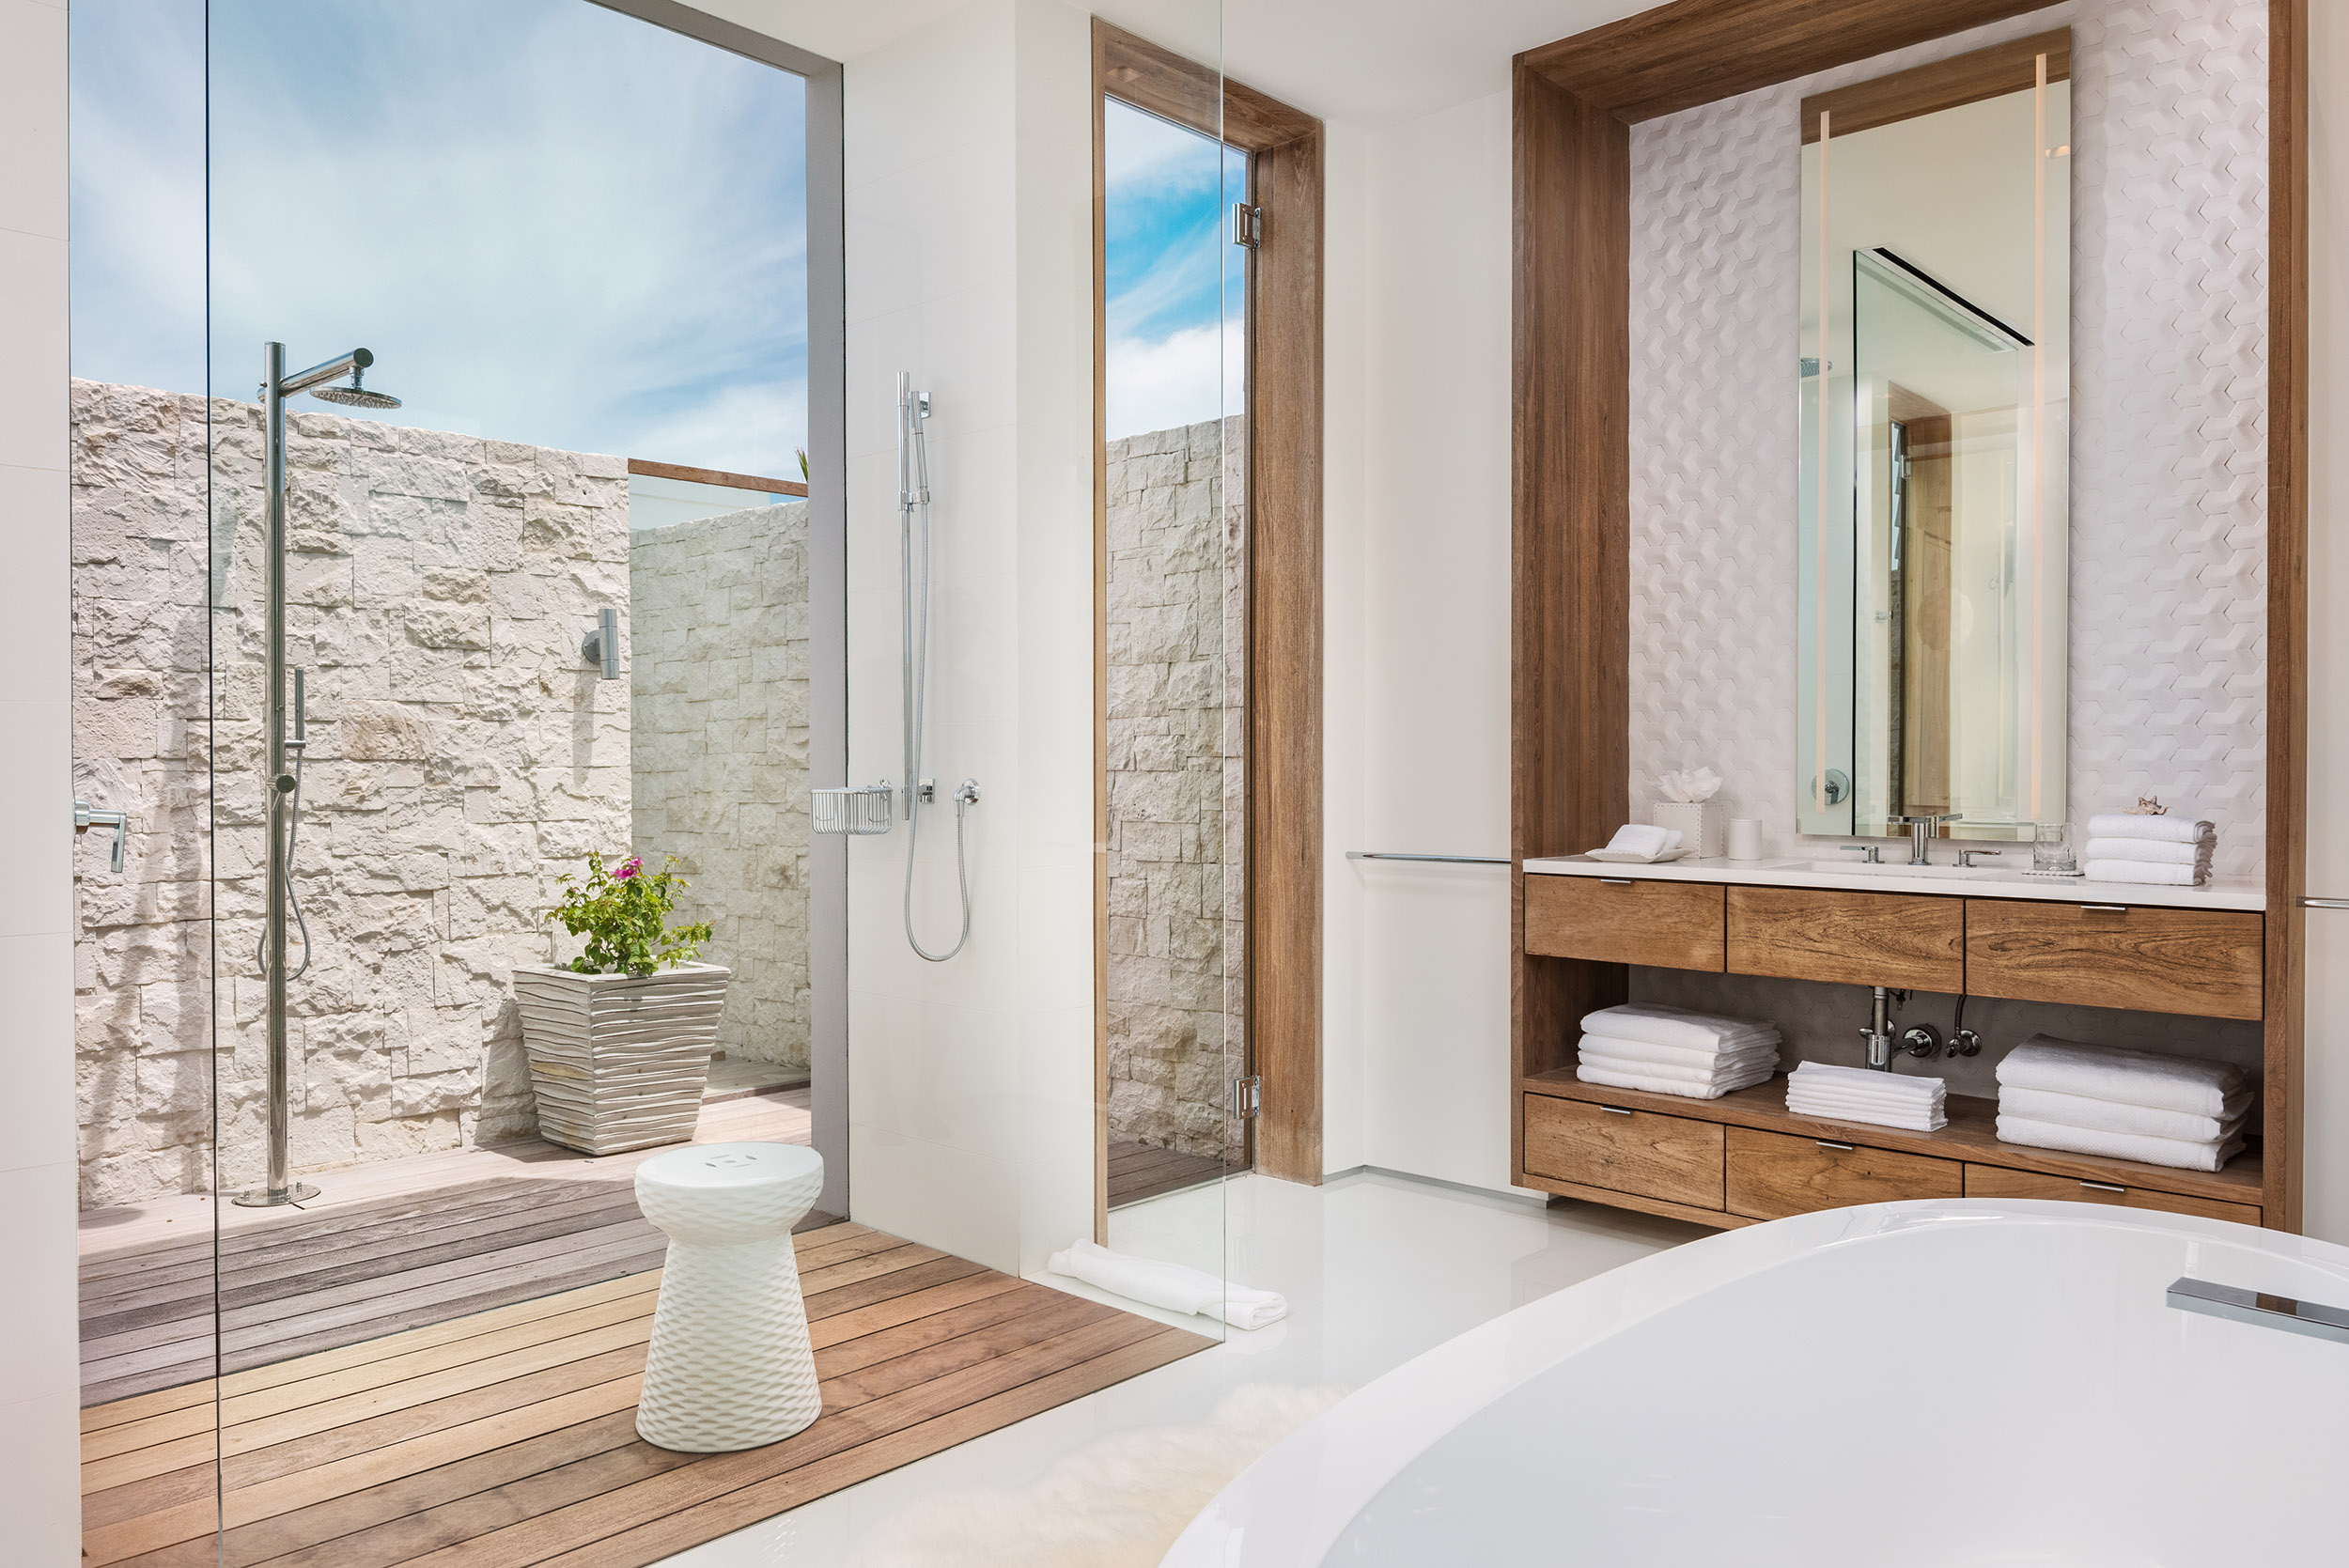 Emerald Pavilion - view of one of the bathrooms with outdoor shower